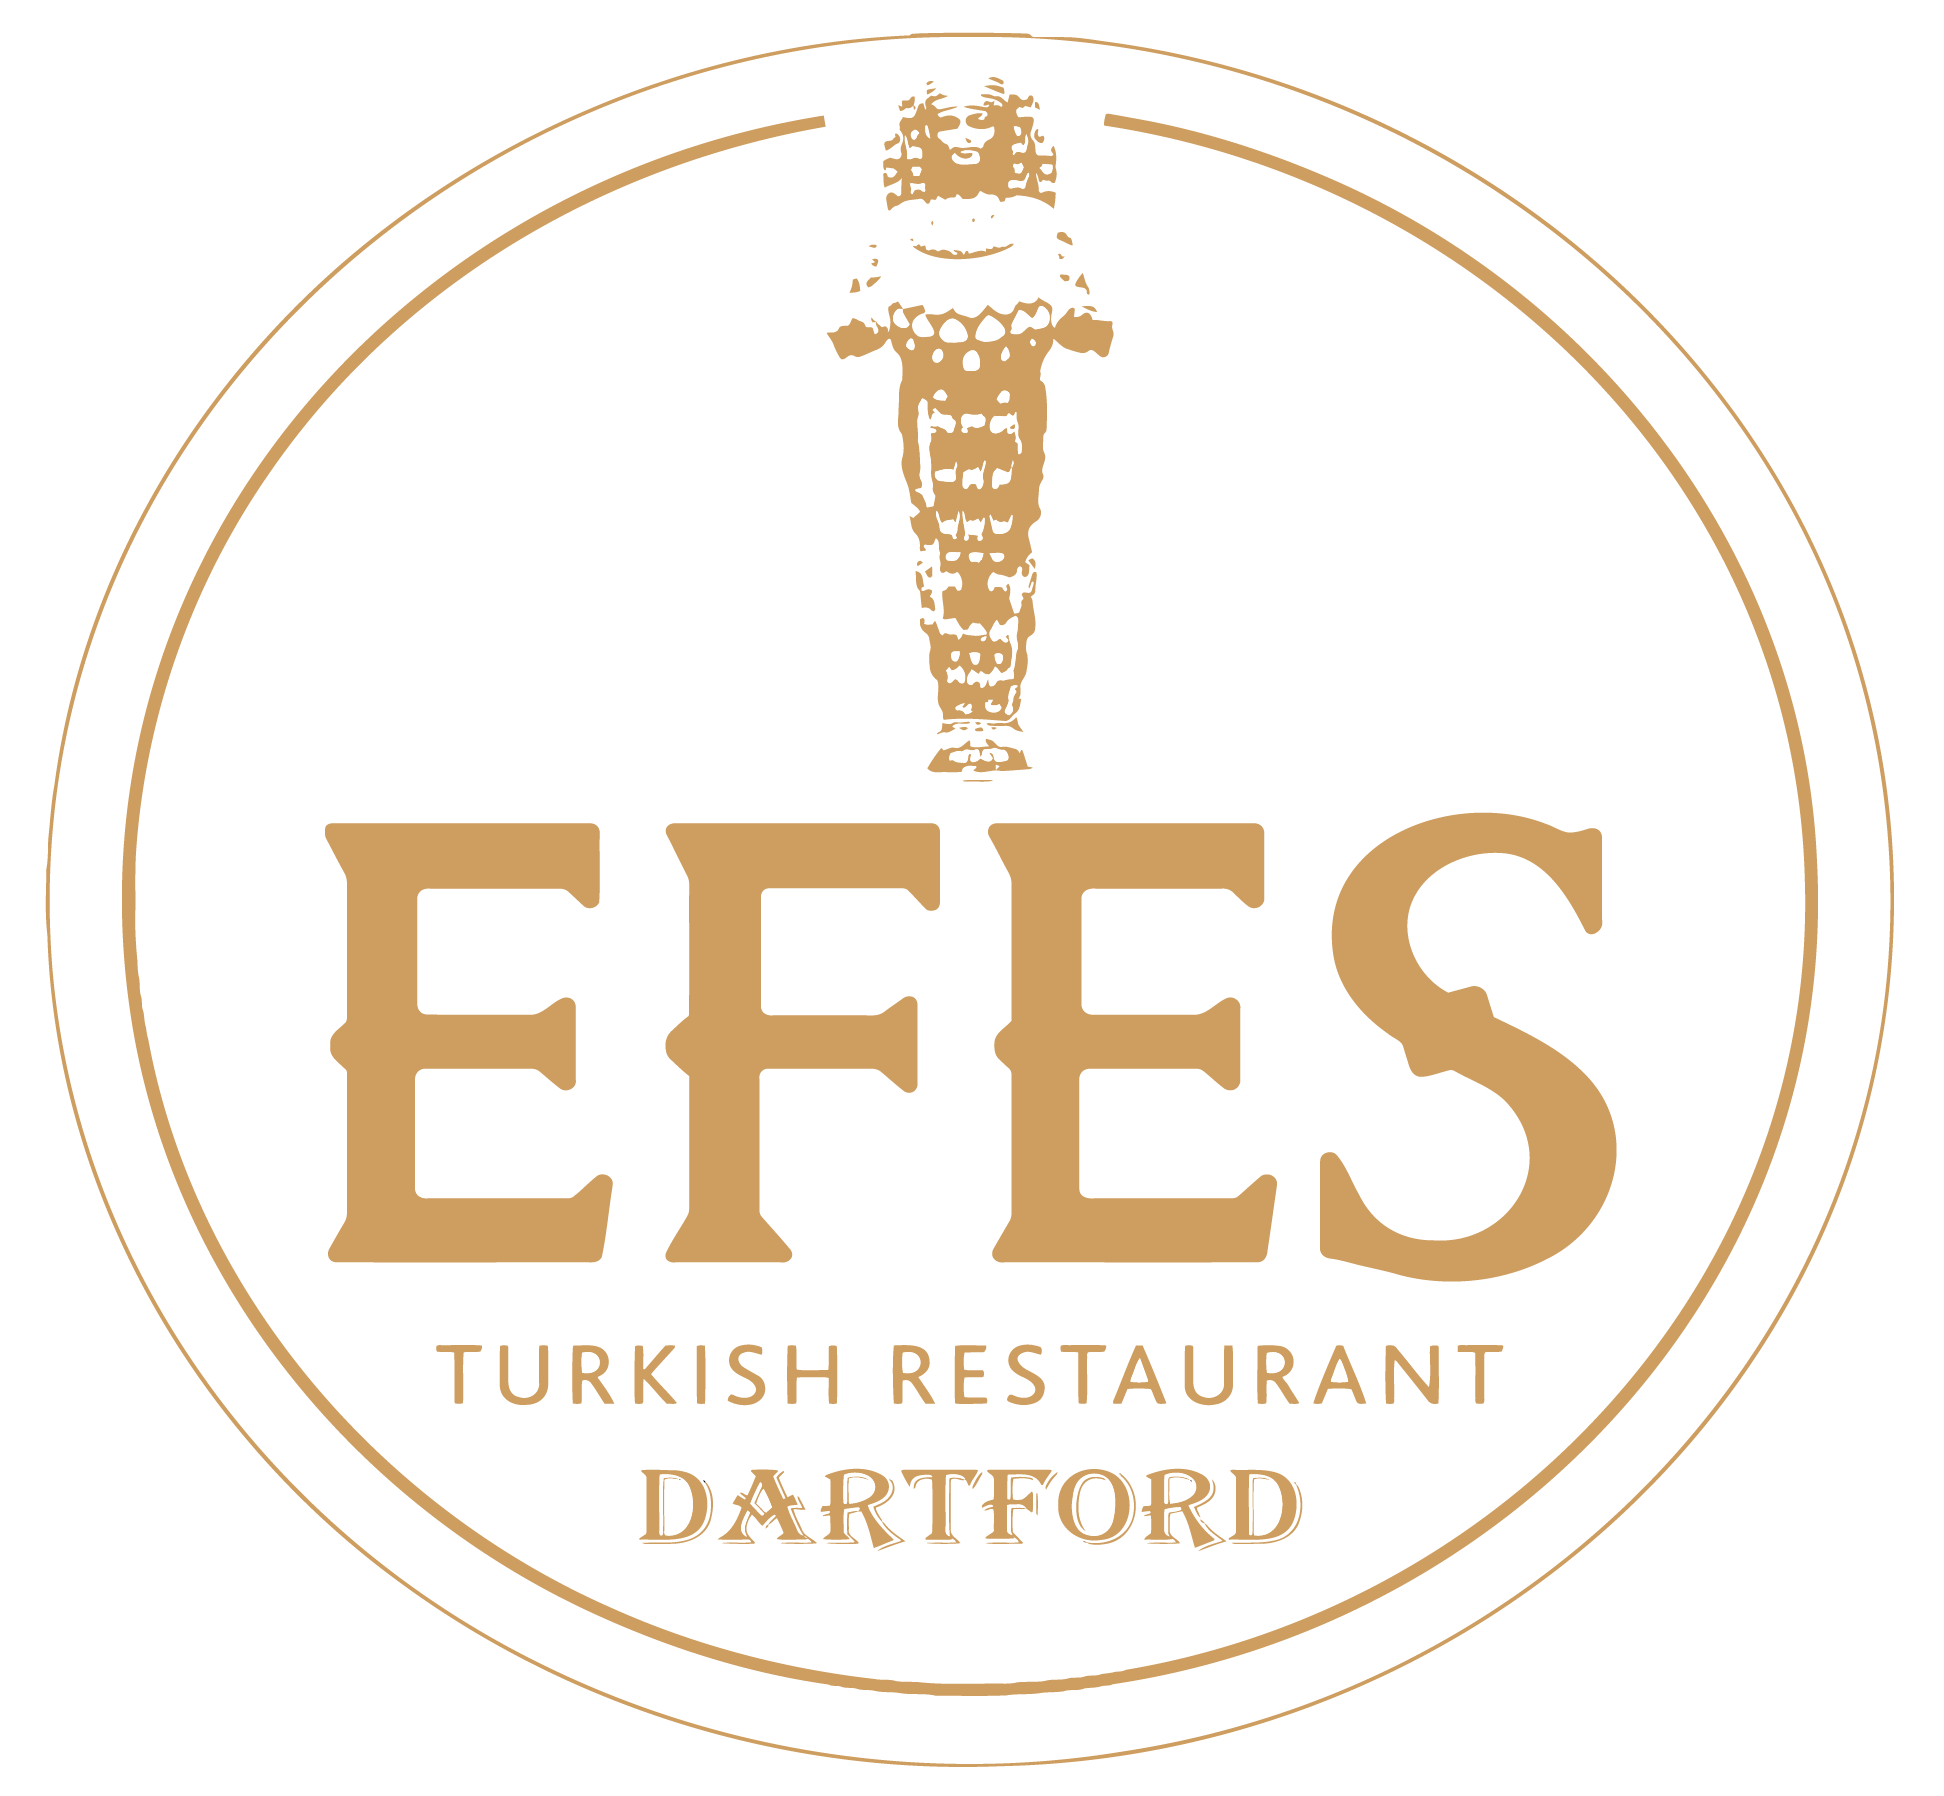 Efes Dartford - Turkish Restaurant